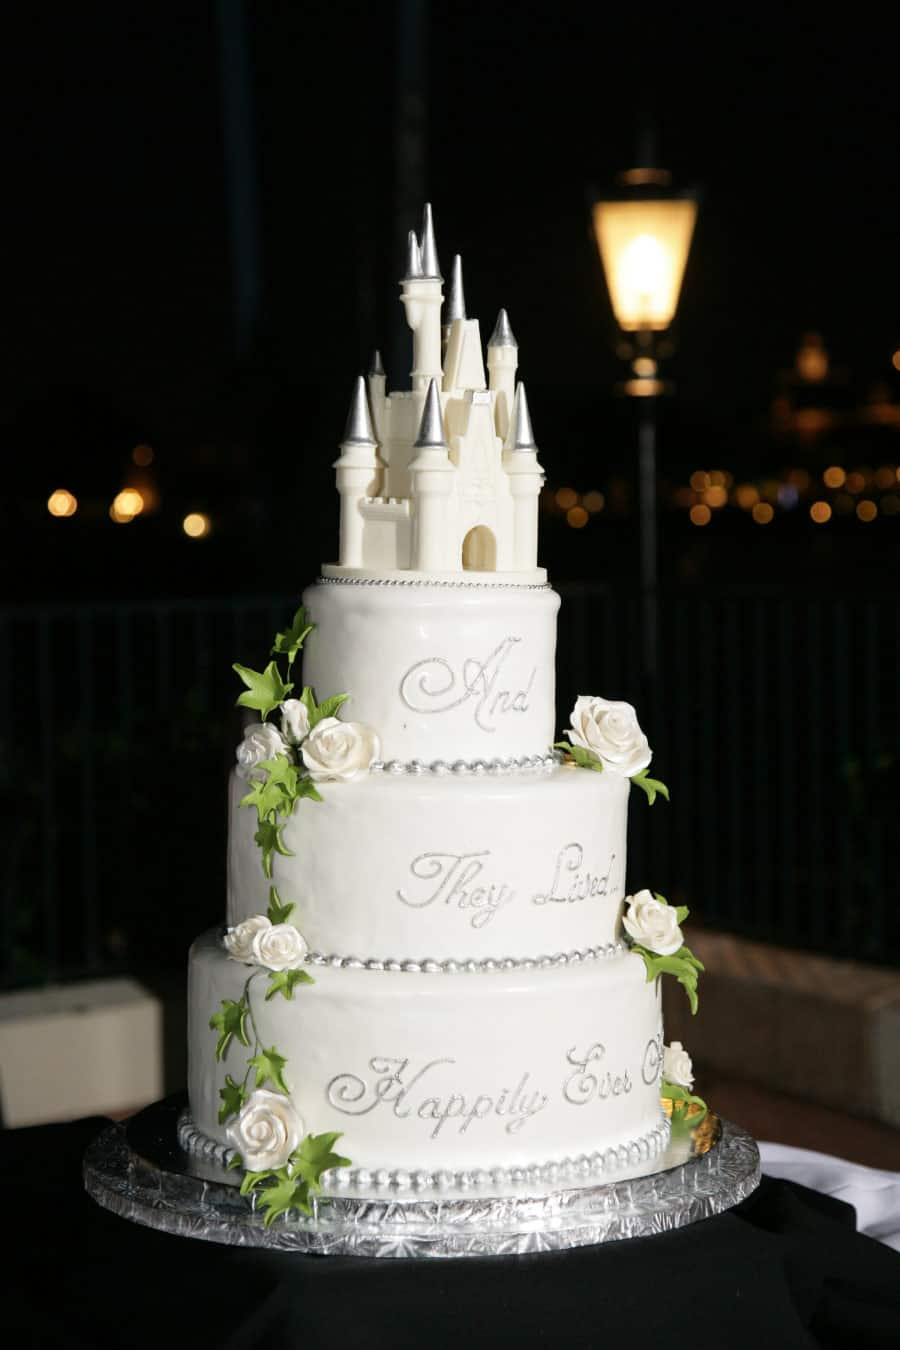 Wedding Trends: Untraditional Cake Toppers | Disney Parks Blog